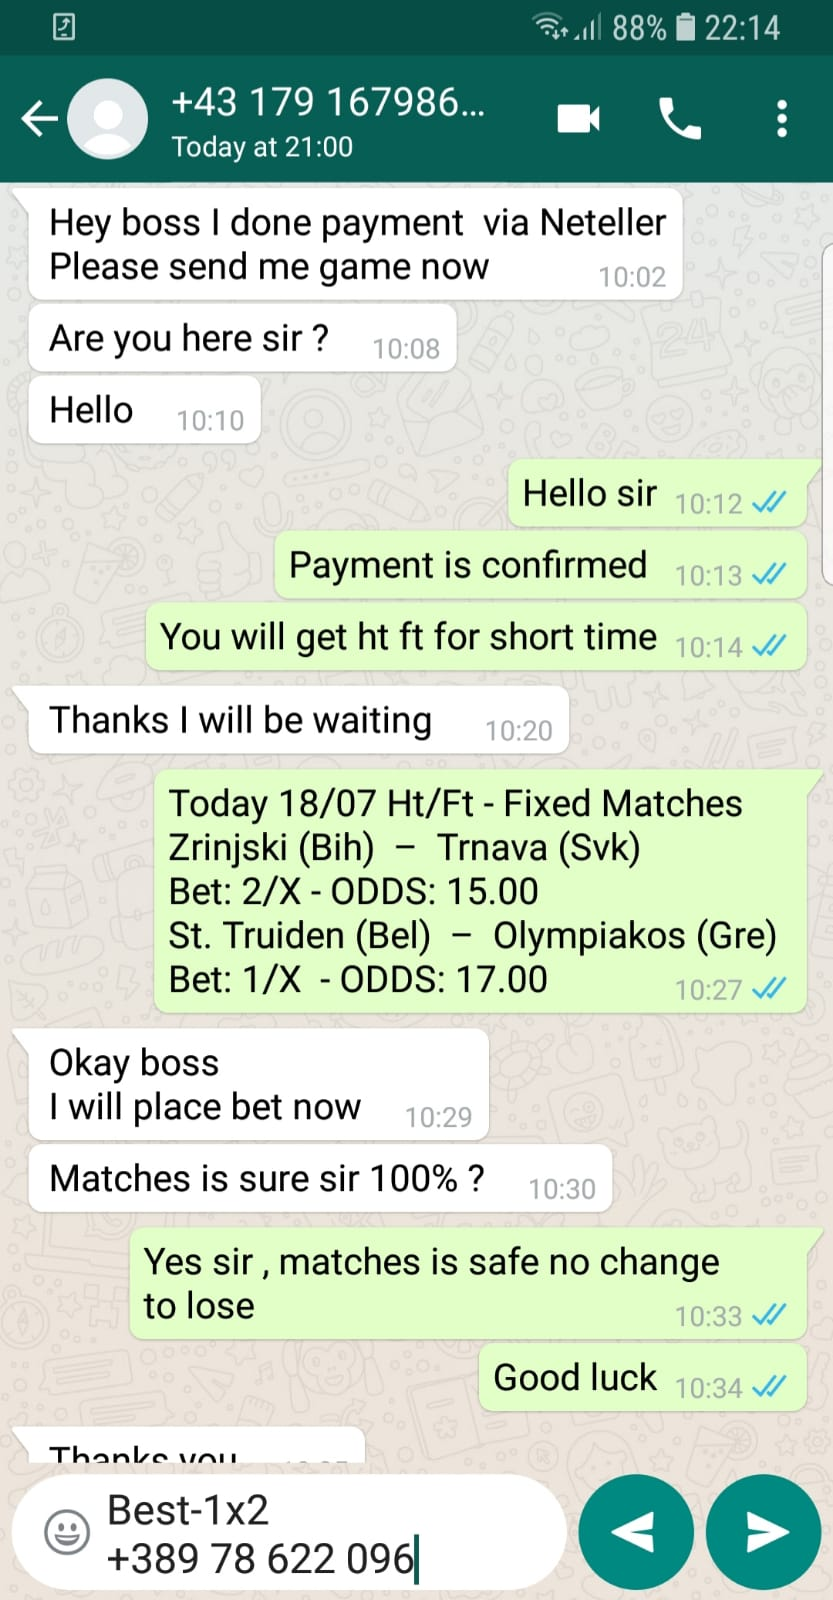 manipulated fixed matches today exchange